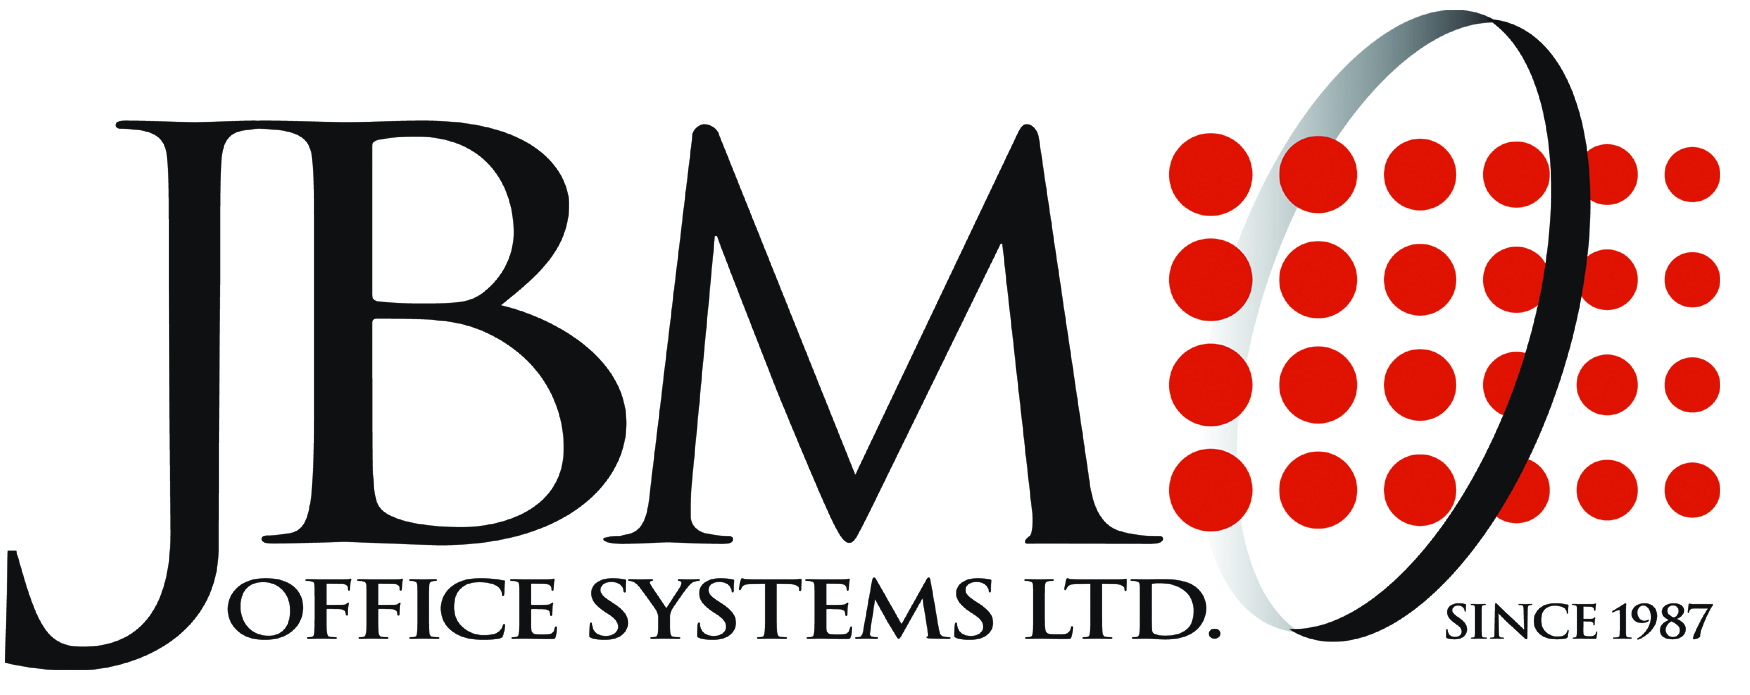 JBM Office Systems Ltd. company logo